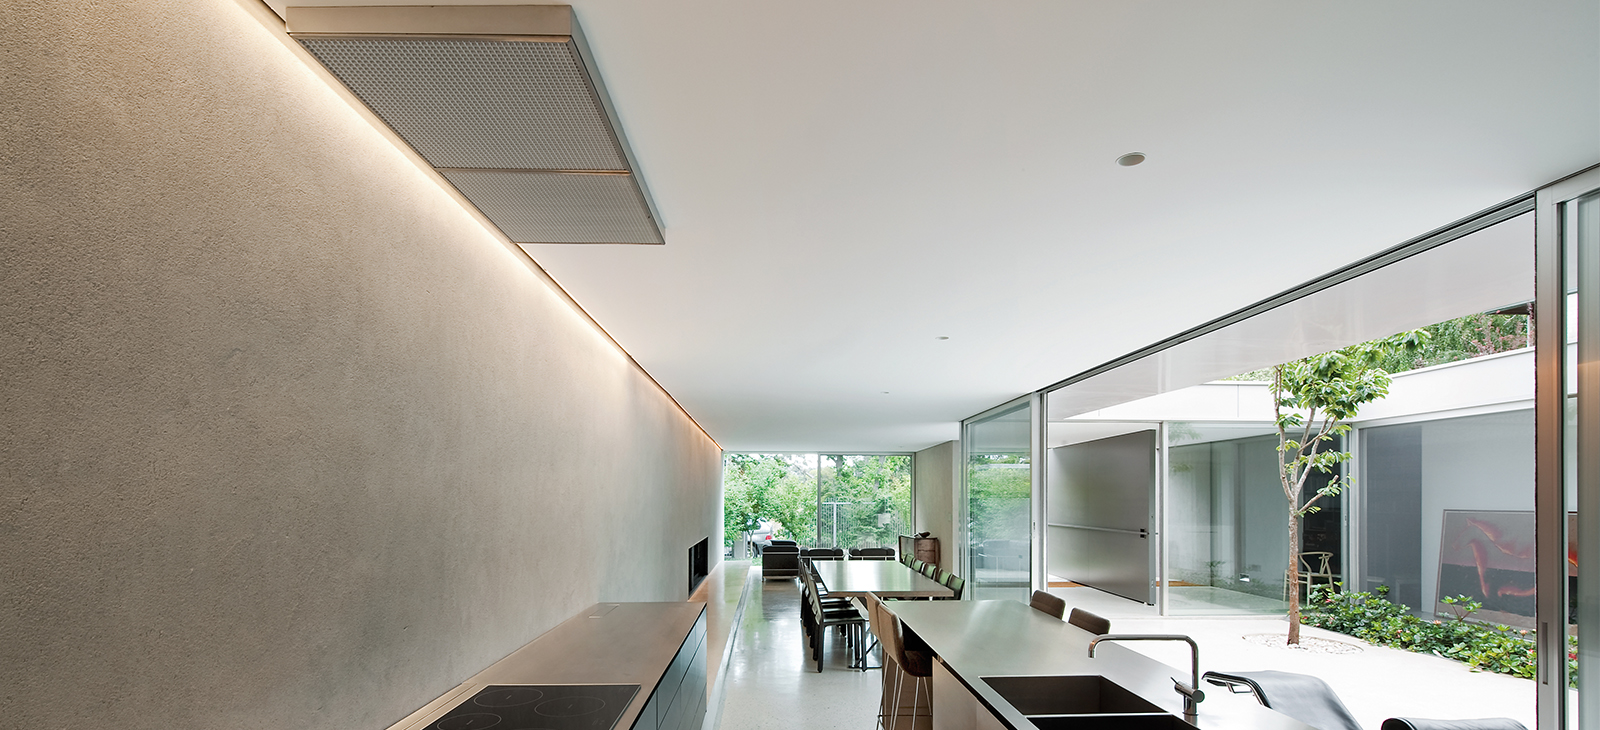 Qasair Rangehoods - Image courtesy Carr Design Group